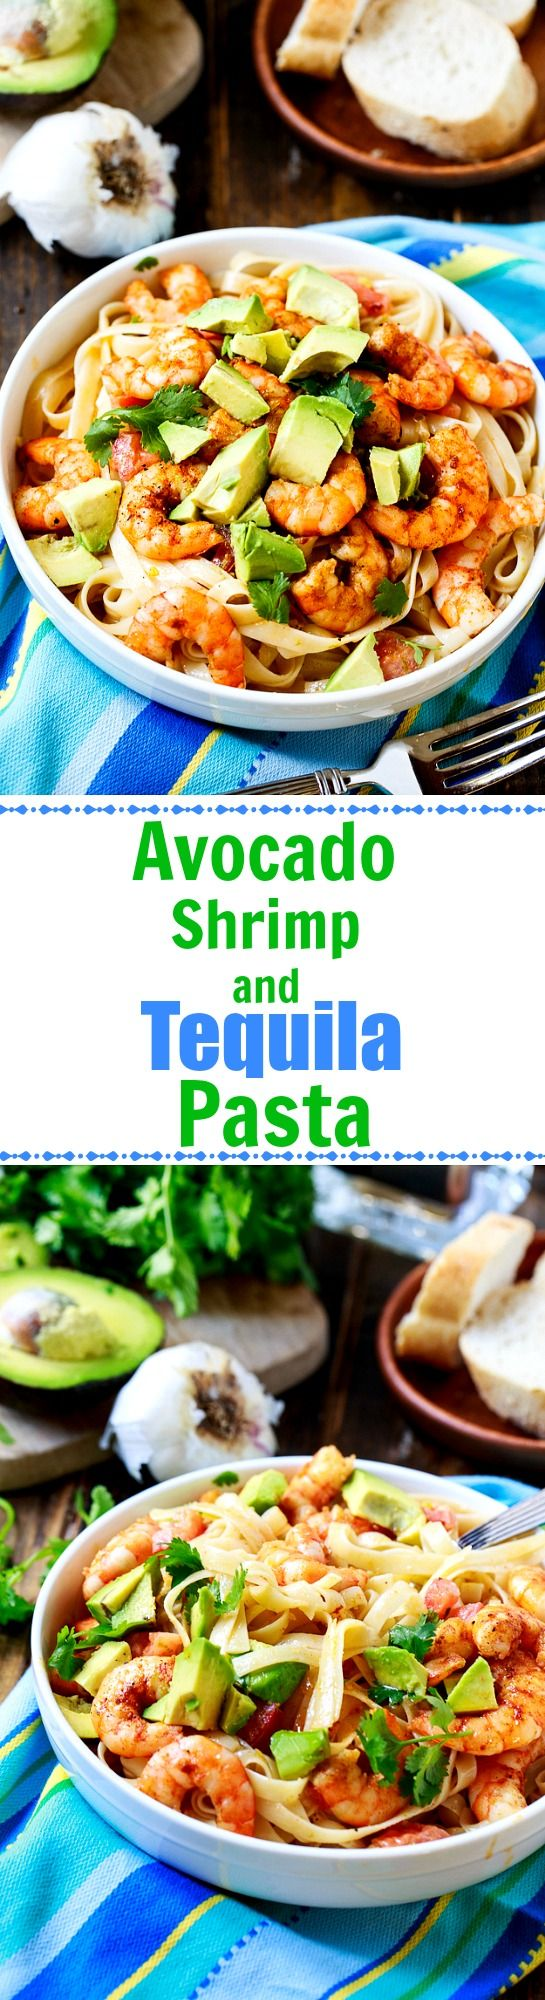 Avocado, Shrimp, and Tequila Pasta - so light and flavorful.